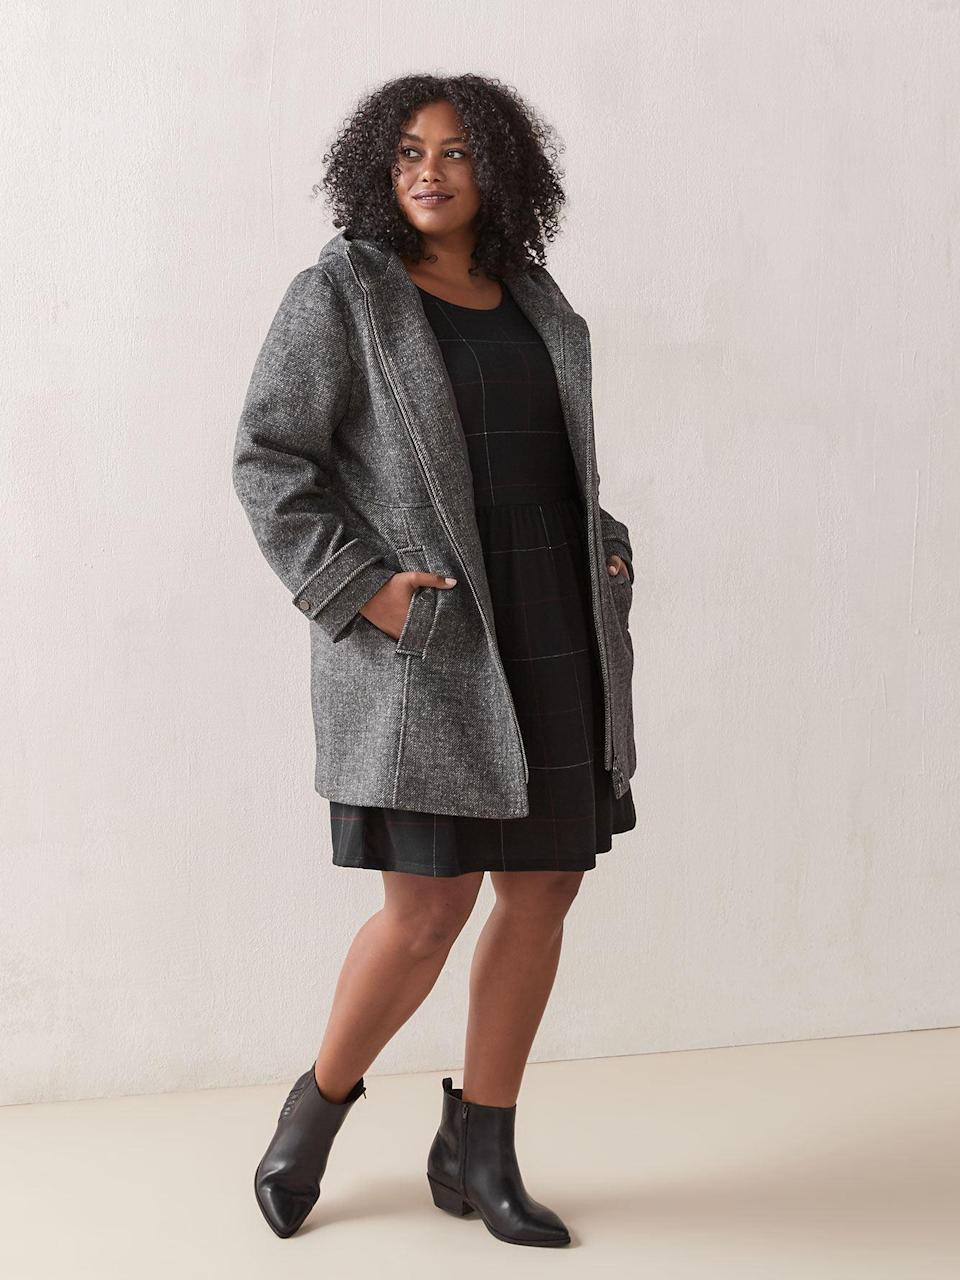 "<br><br><strong>In Every Story</strong> Zip Front Wool Coat, $, available at <a href=""https://go.skimresources.com/?id=30283X879131&url=https%3A%2F%2Fwww.penningtons.com%2Fen%2Fzip-front-wool-coat---in-every-story%2F439008.html"" rel=""nofollow noopener"" target=""_blank"" data-ylk=""slk:Penningtons"" class=""link rapid-noclick-resp"">Penningtons</a>"